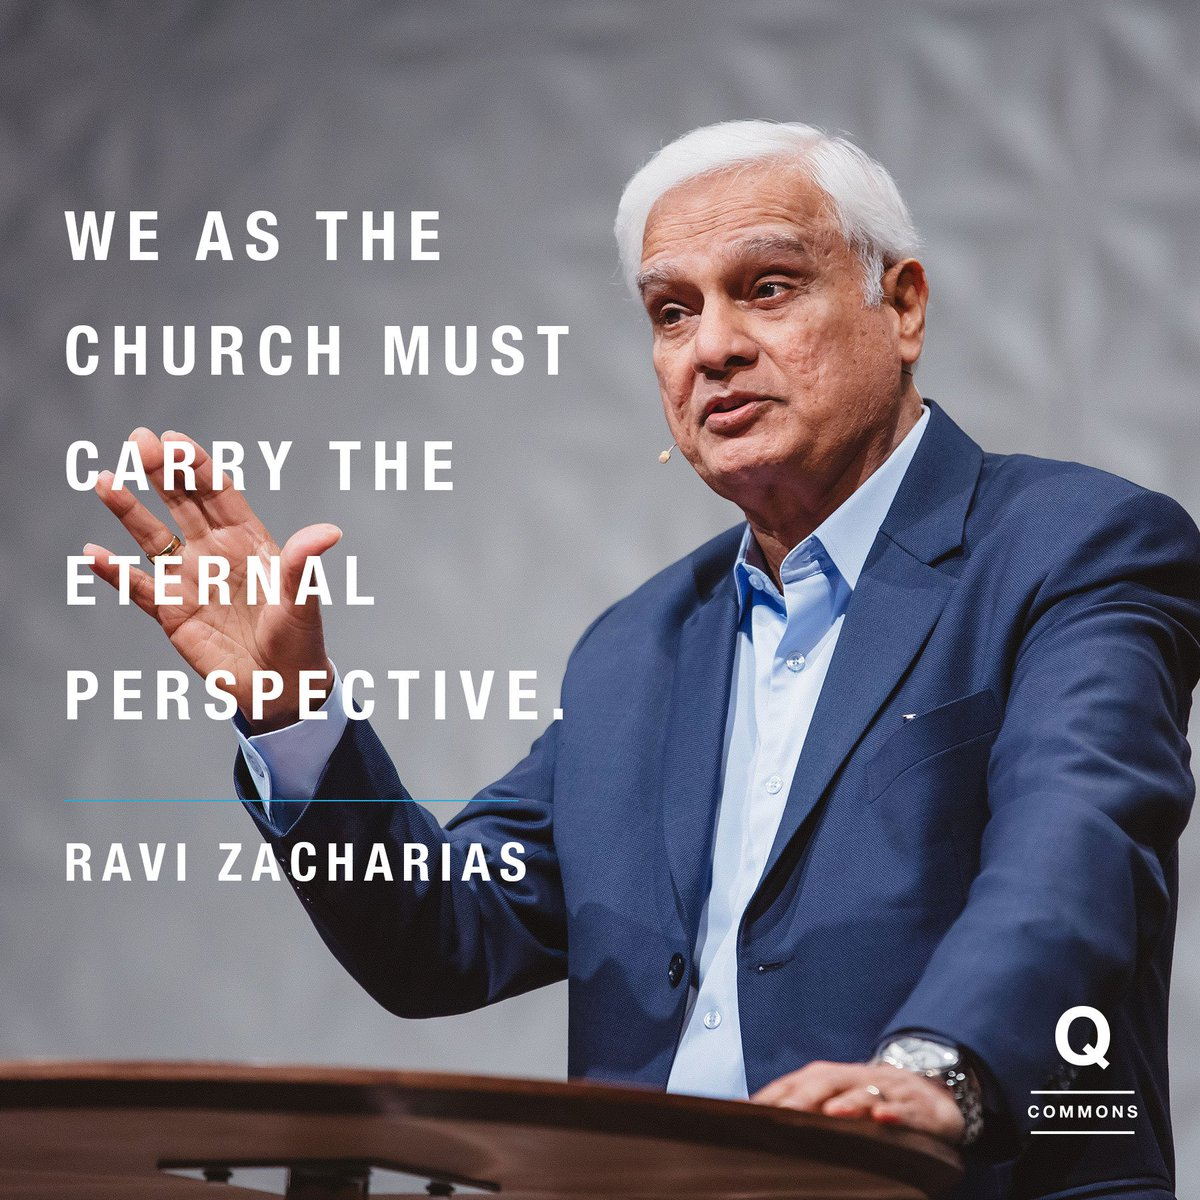 How should we respond when we feel divided? @RaviZacharias at #QCommons https://t.co/Egbz2t2hwy